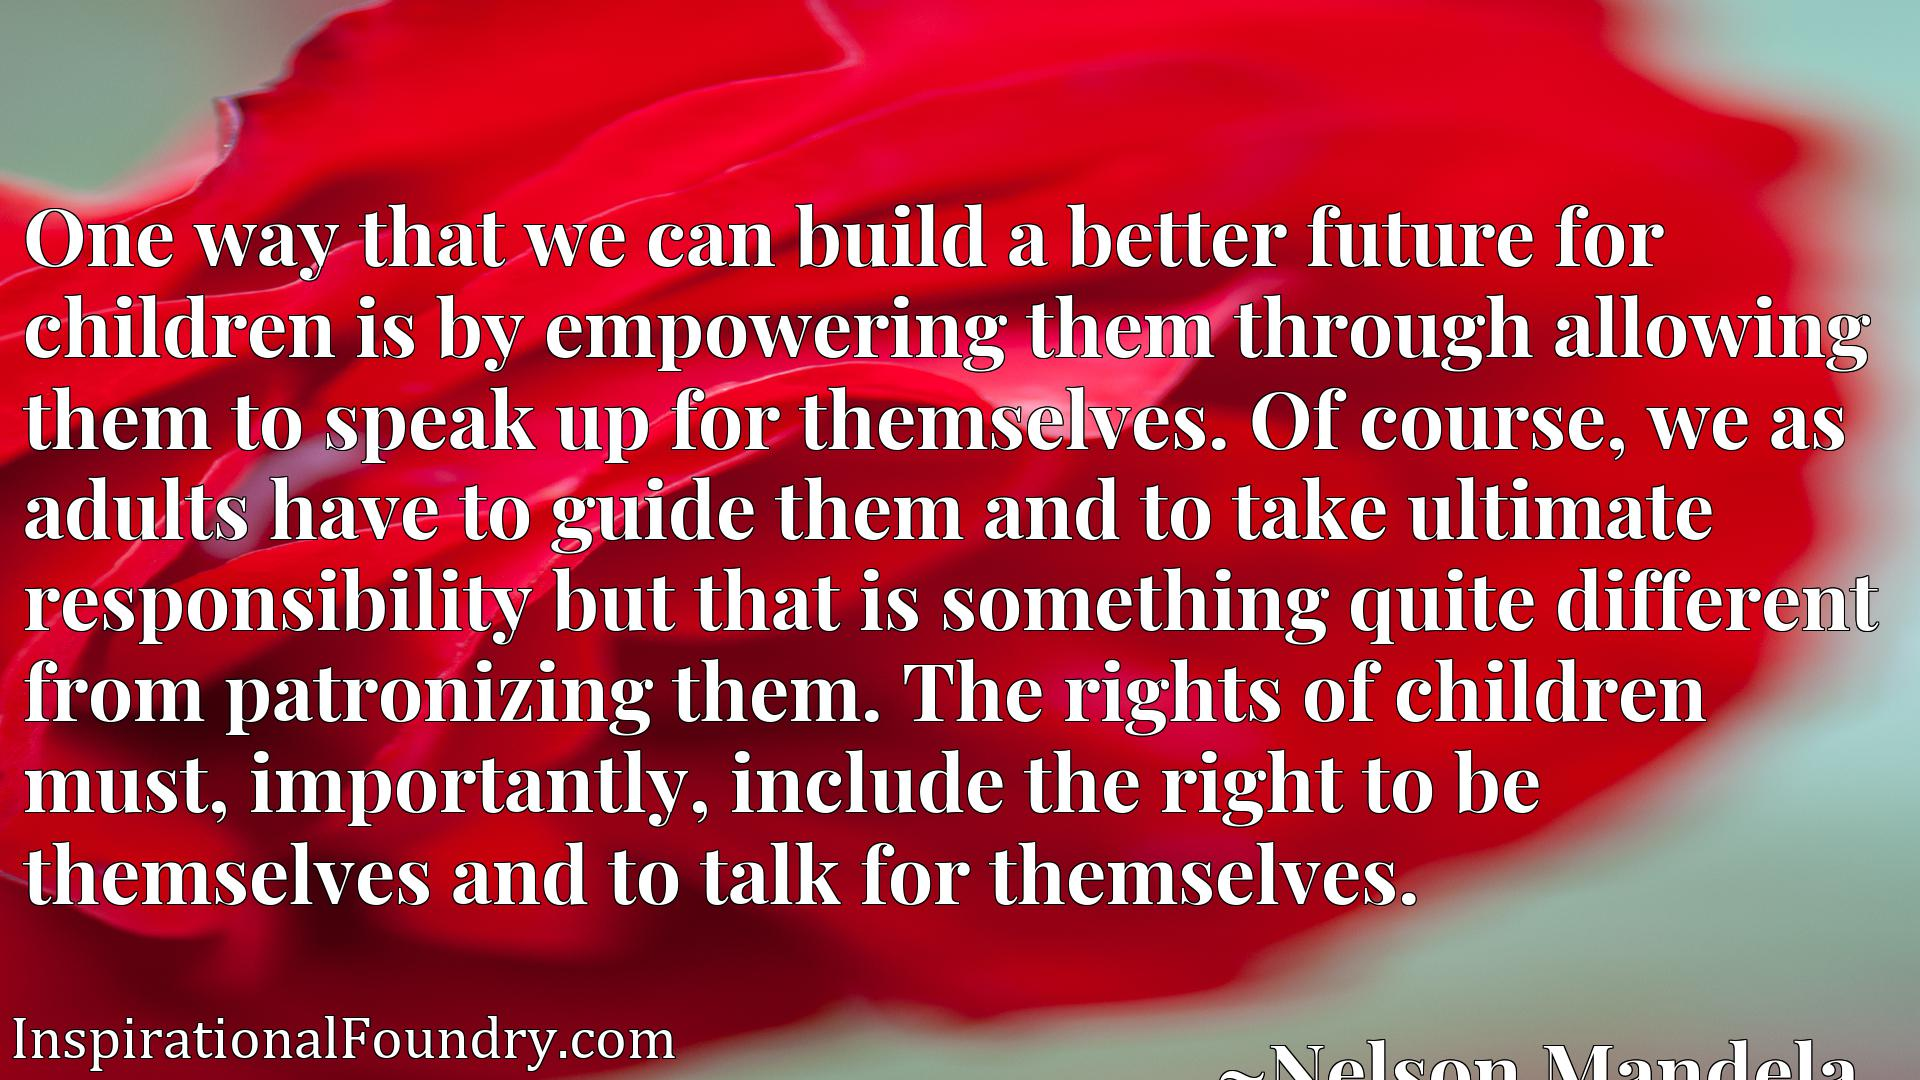 One way that we can build a better future for children is by empowering them through allowing them to speak up for themselves. Of course, we as adults have to guide them and to take ultimate responsibility but that is something quite different from patronizing them. The rights of children must, importantly, include the right to be themselves and to talk for themselves.